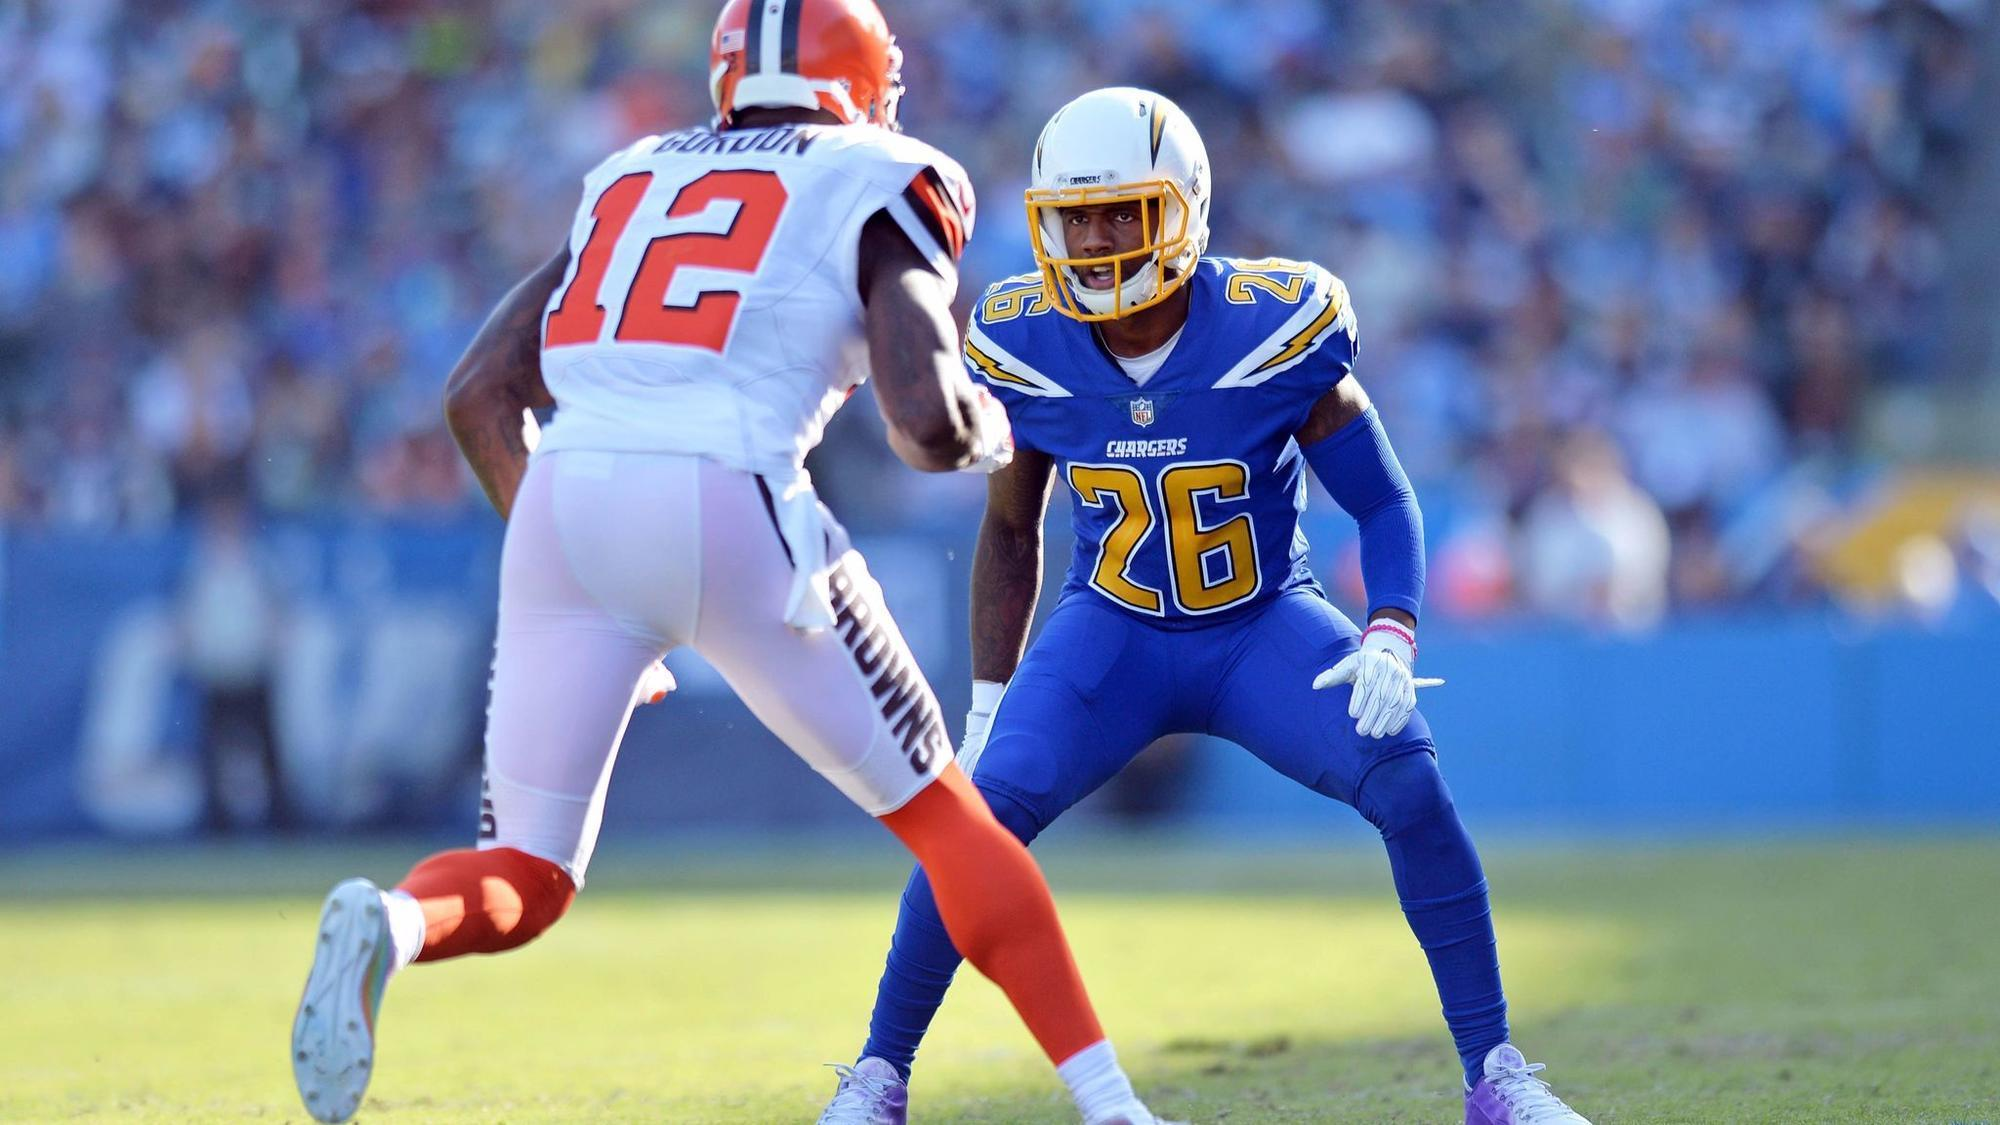 Chargers Hayward grateful to be back with brothers after tragic